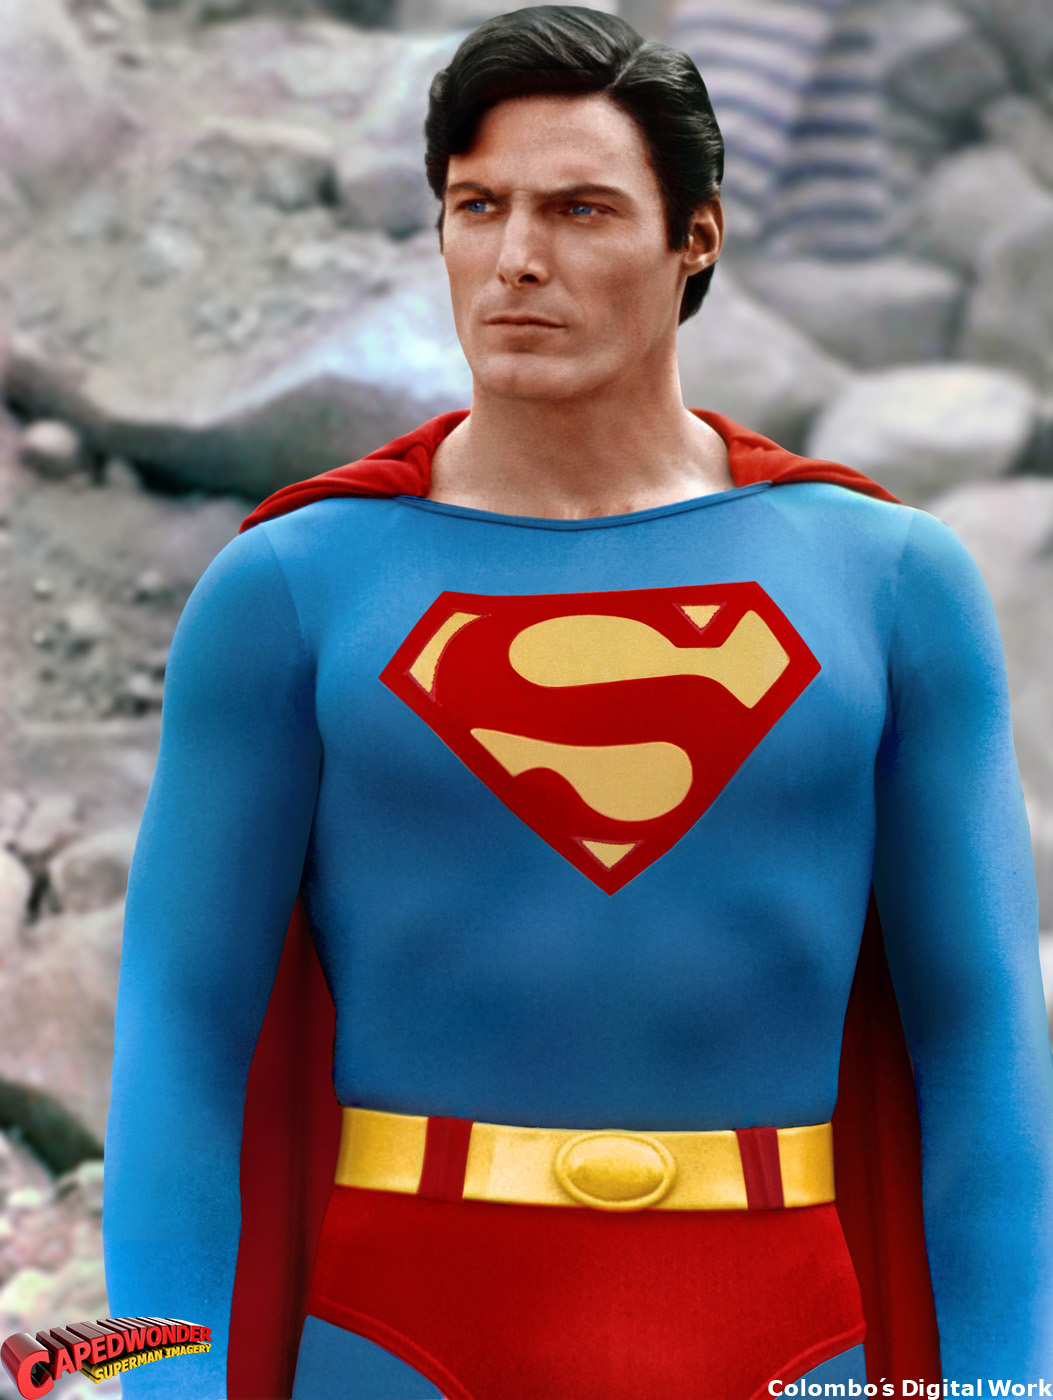 superman christopher reeve Celebrity HD Wallpaper